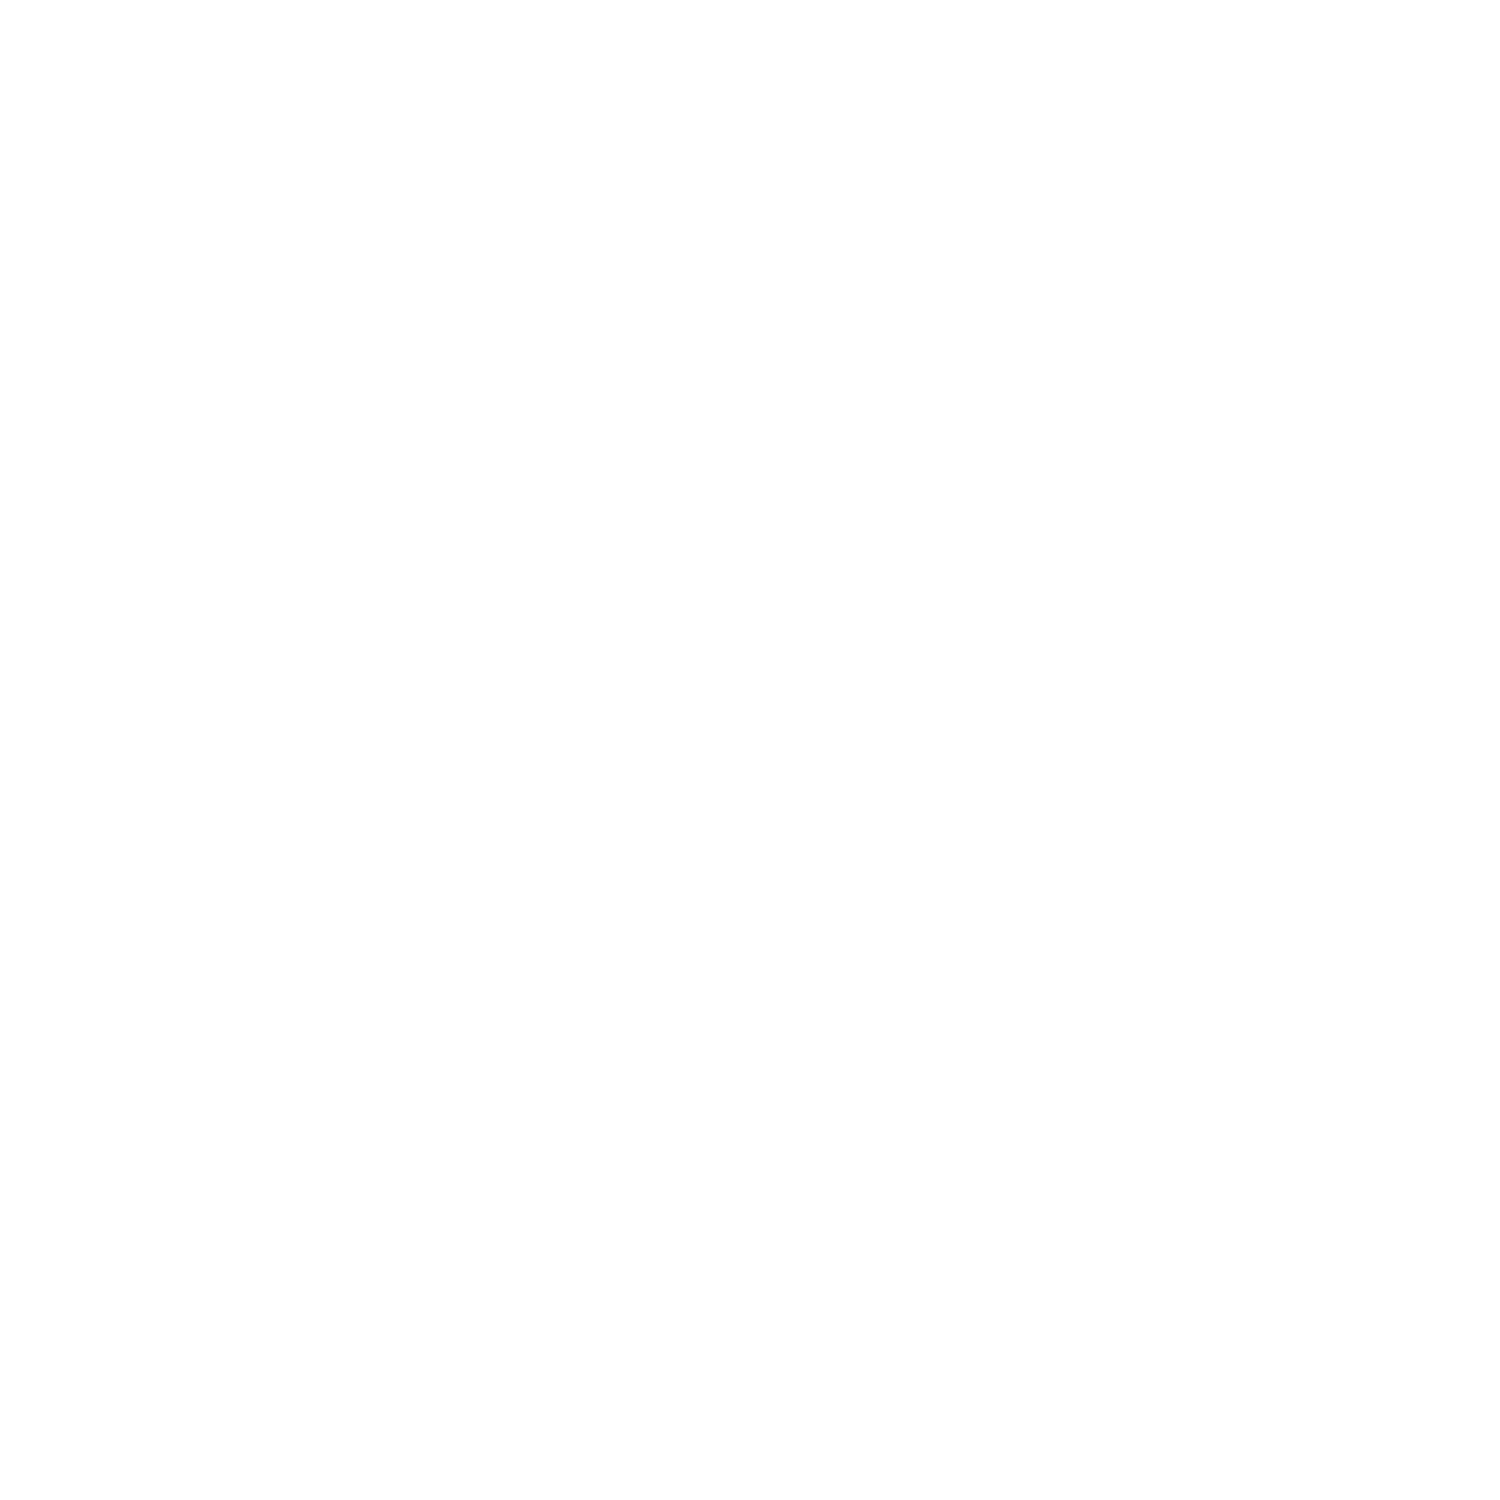 Stackle Swim Technique and Training